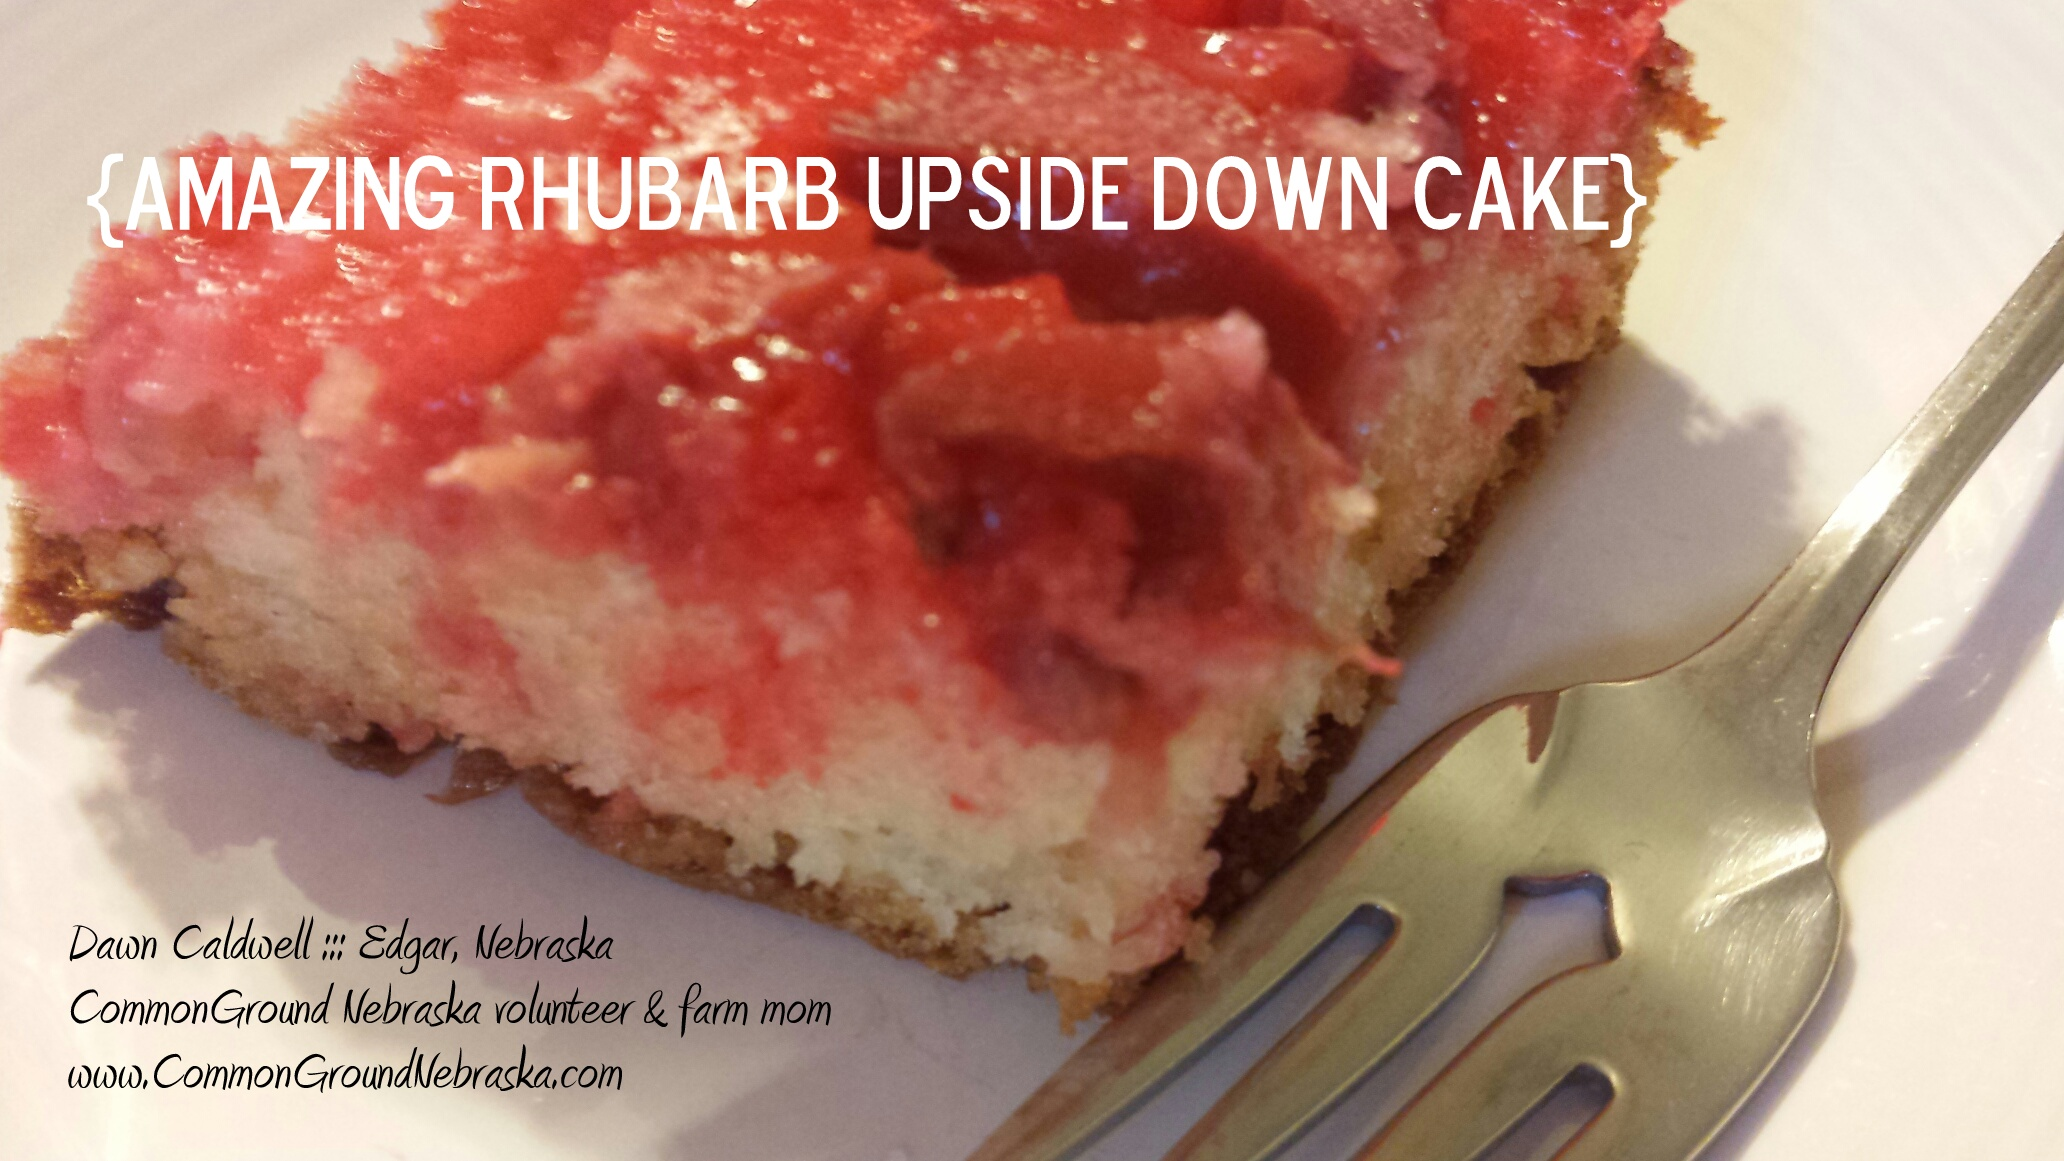 Frozen rhubarb cake recipes